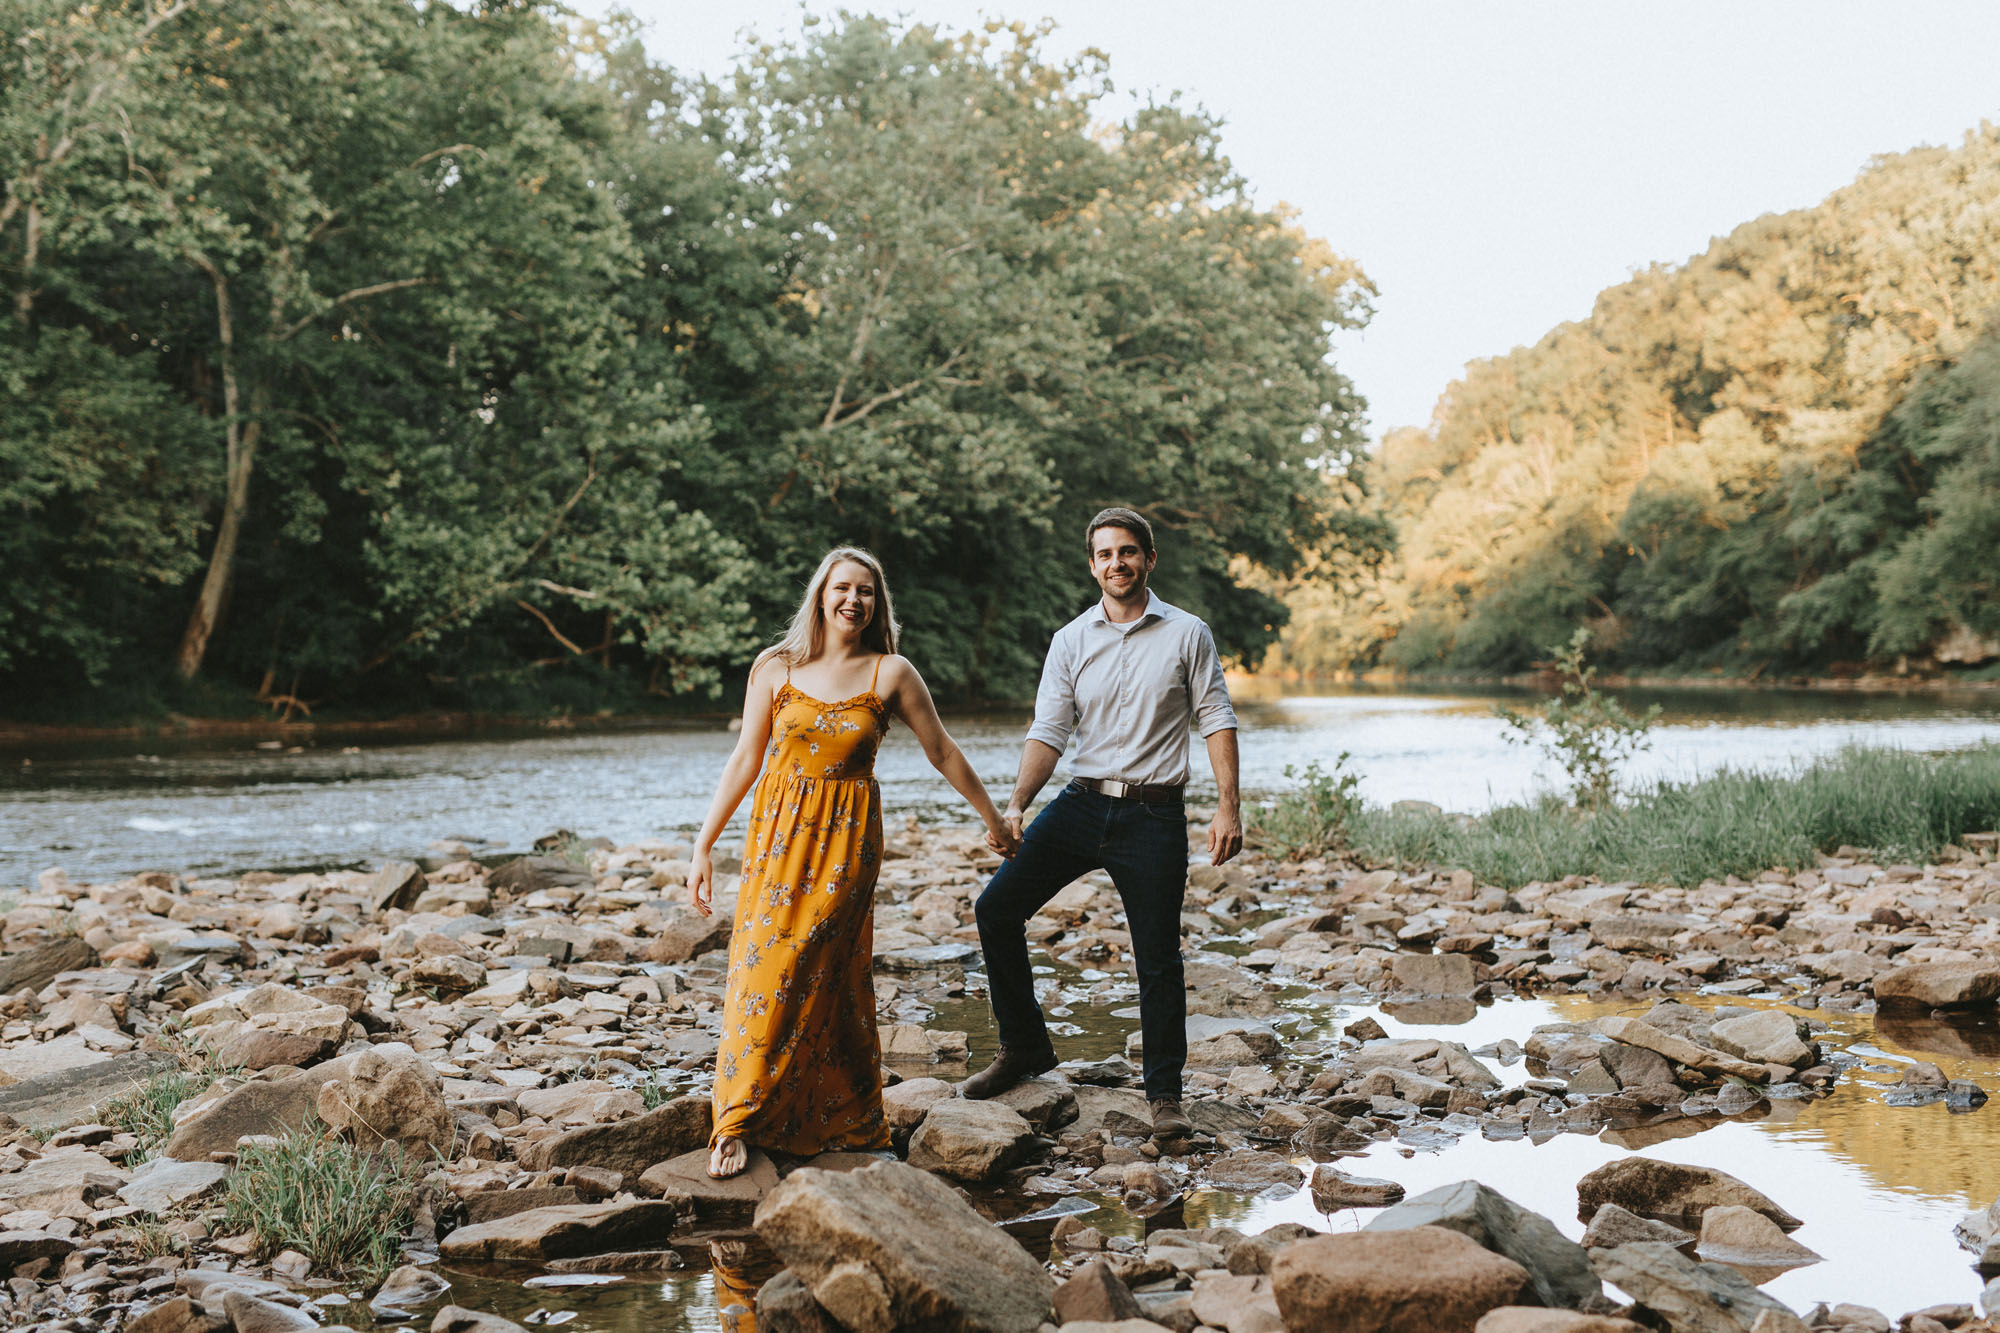 Twisted-Oaks-Jessica-Matt-EngagementI07A3442.jpg